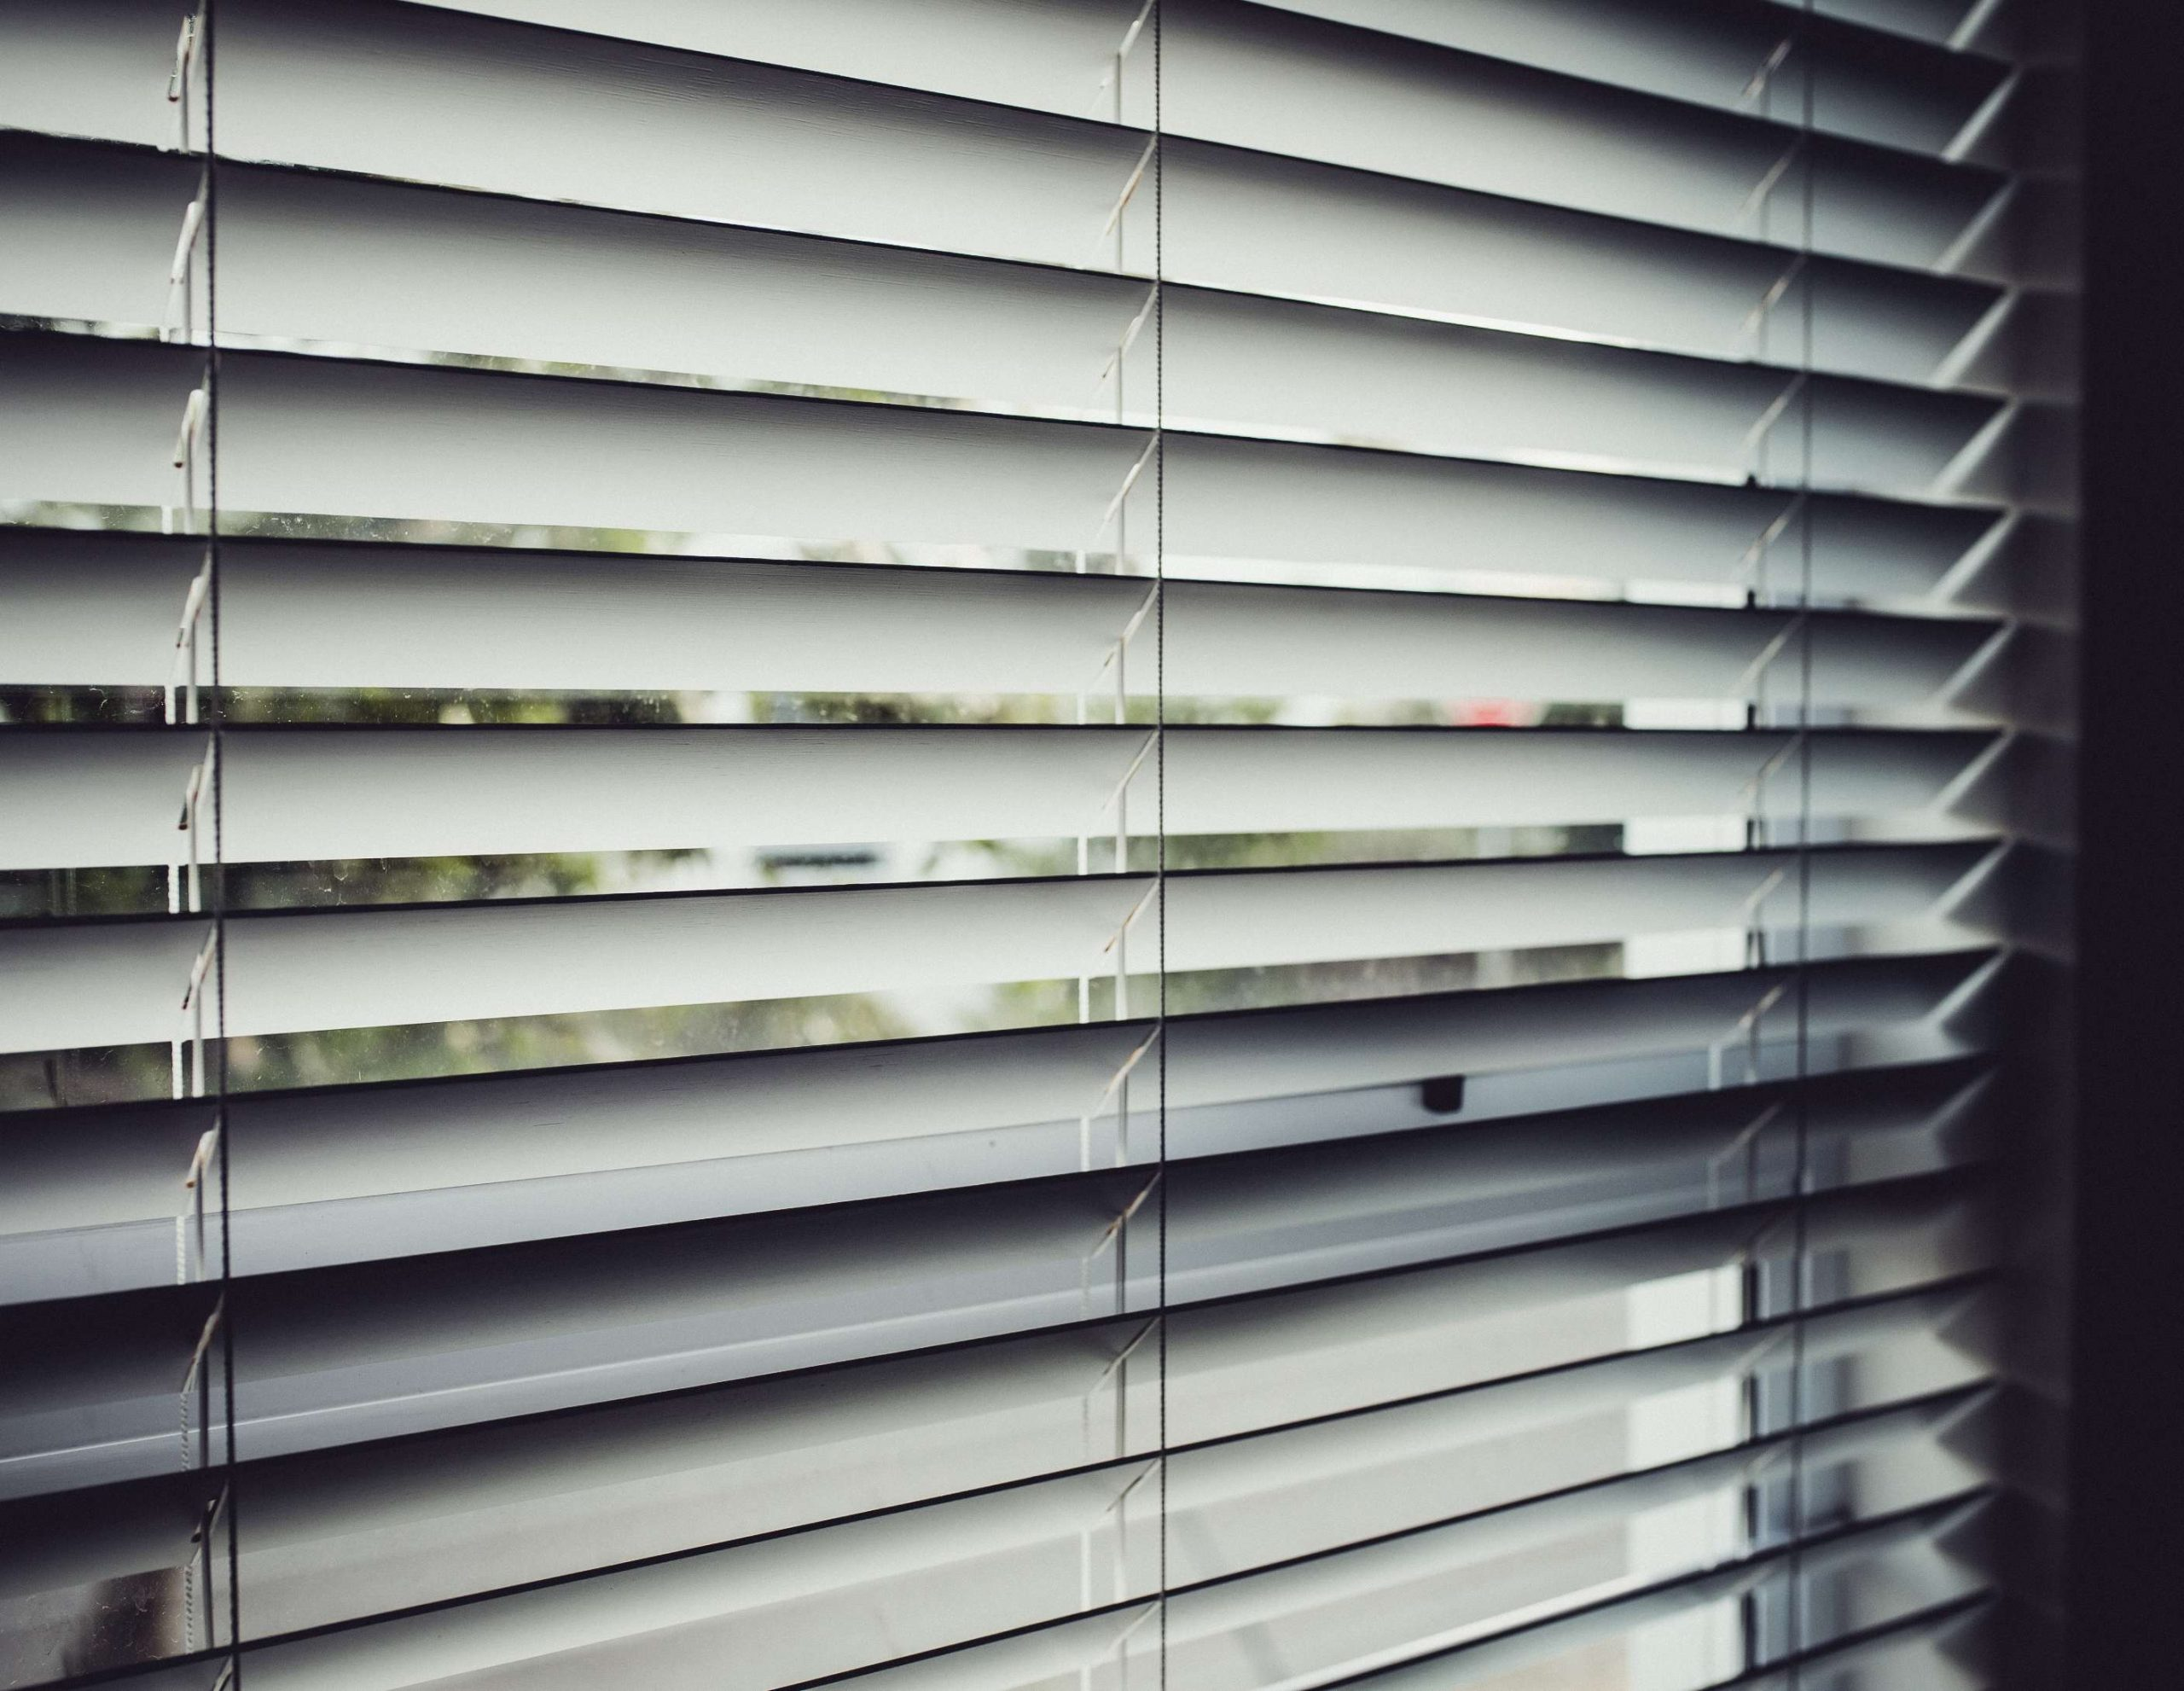 How Do You Get Cigarette Smoke Out of Blinds?